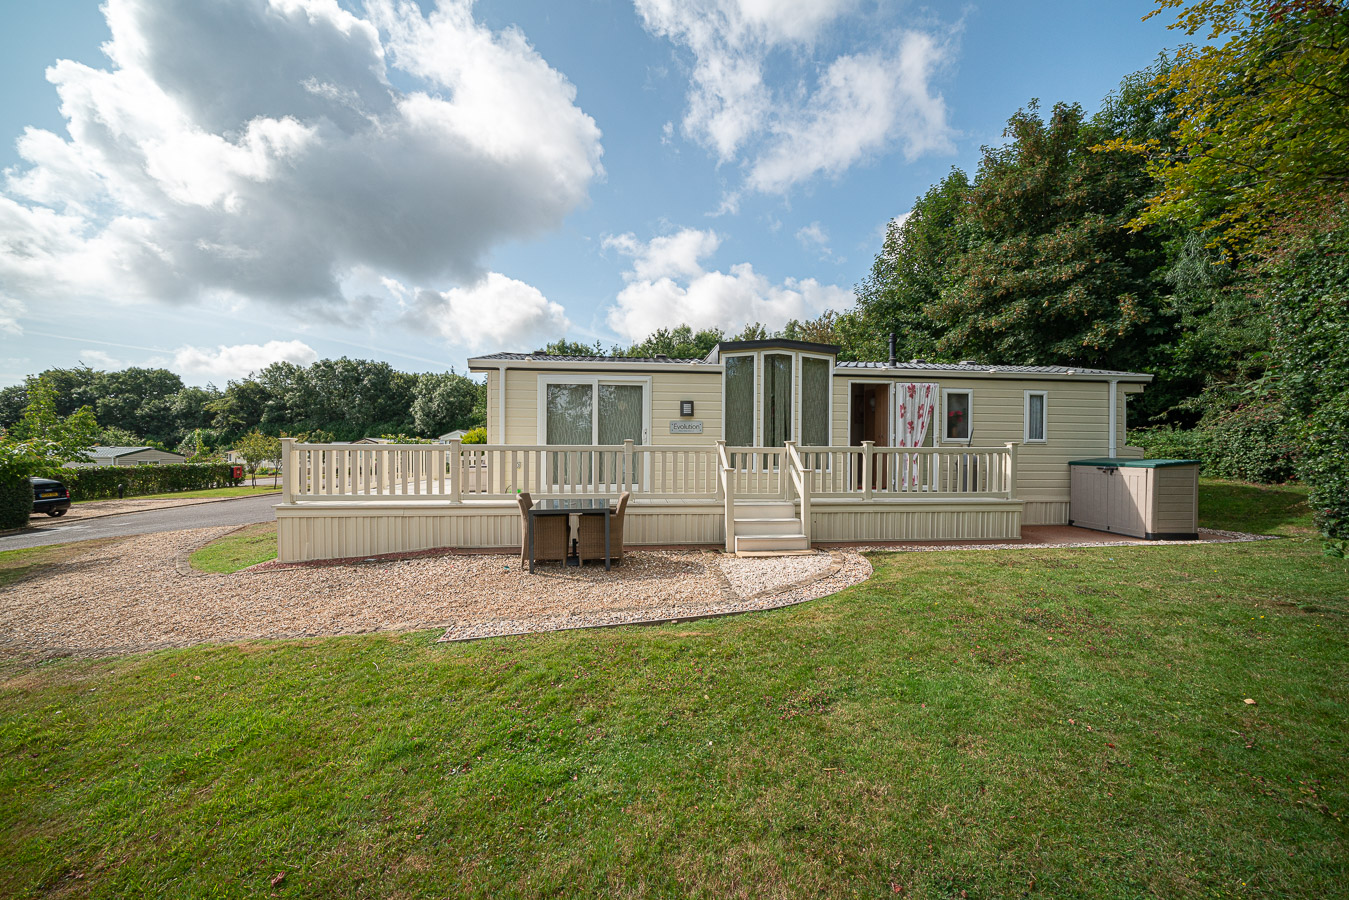 Monkton-Wyld-Static-Mobile-Holiday-Home-Sale-Plot-23-Charmouth-Lyme-Regis-West-Dorset-2